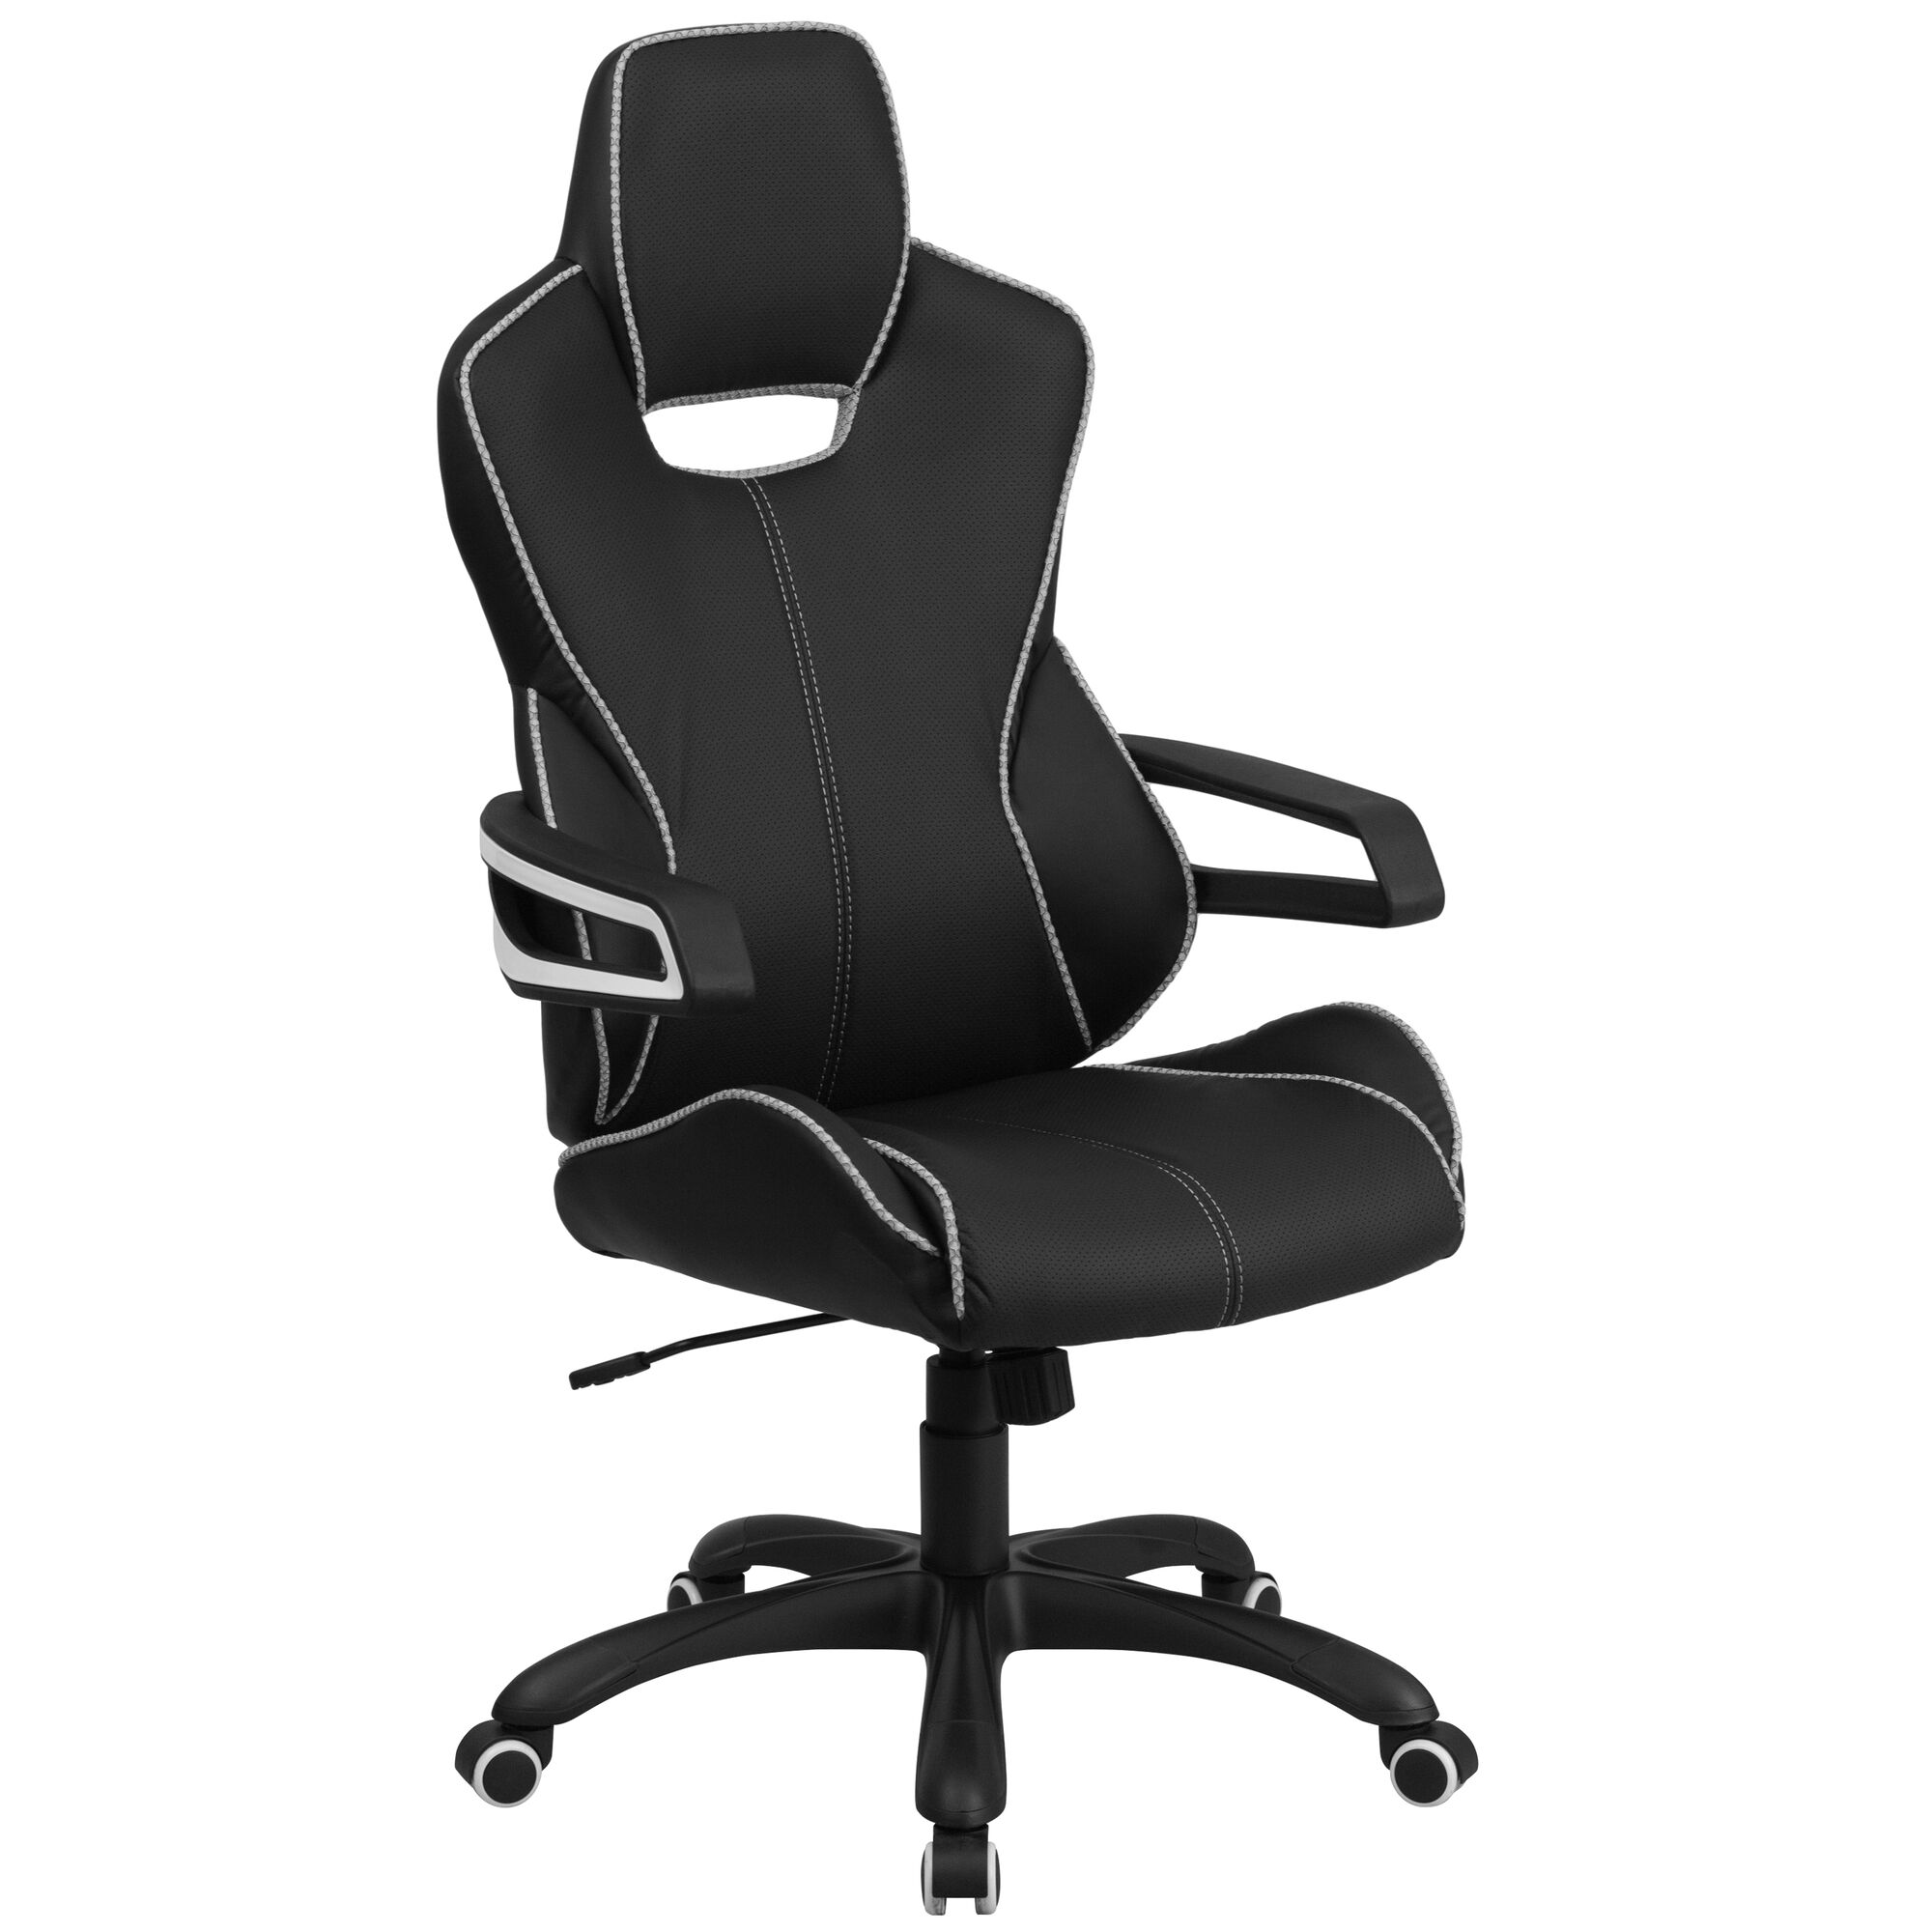 Sensational High Back Black Vinyl Executive Swivel Office Chair With White Trim And Arms Onthecornerstone Fun Painted Chair Ideas Images Onthecornerstoneorg